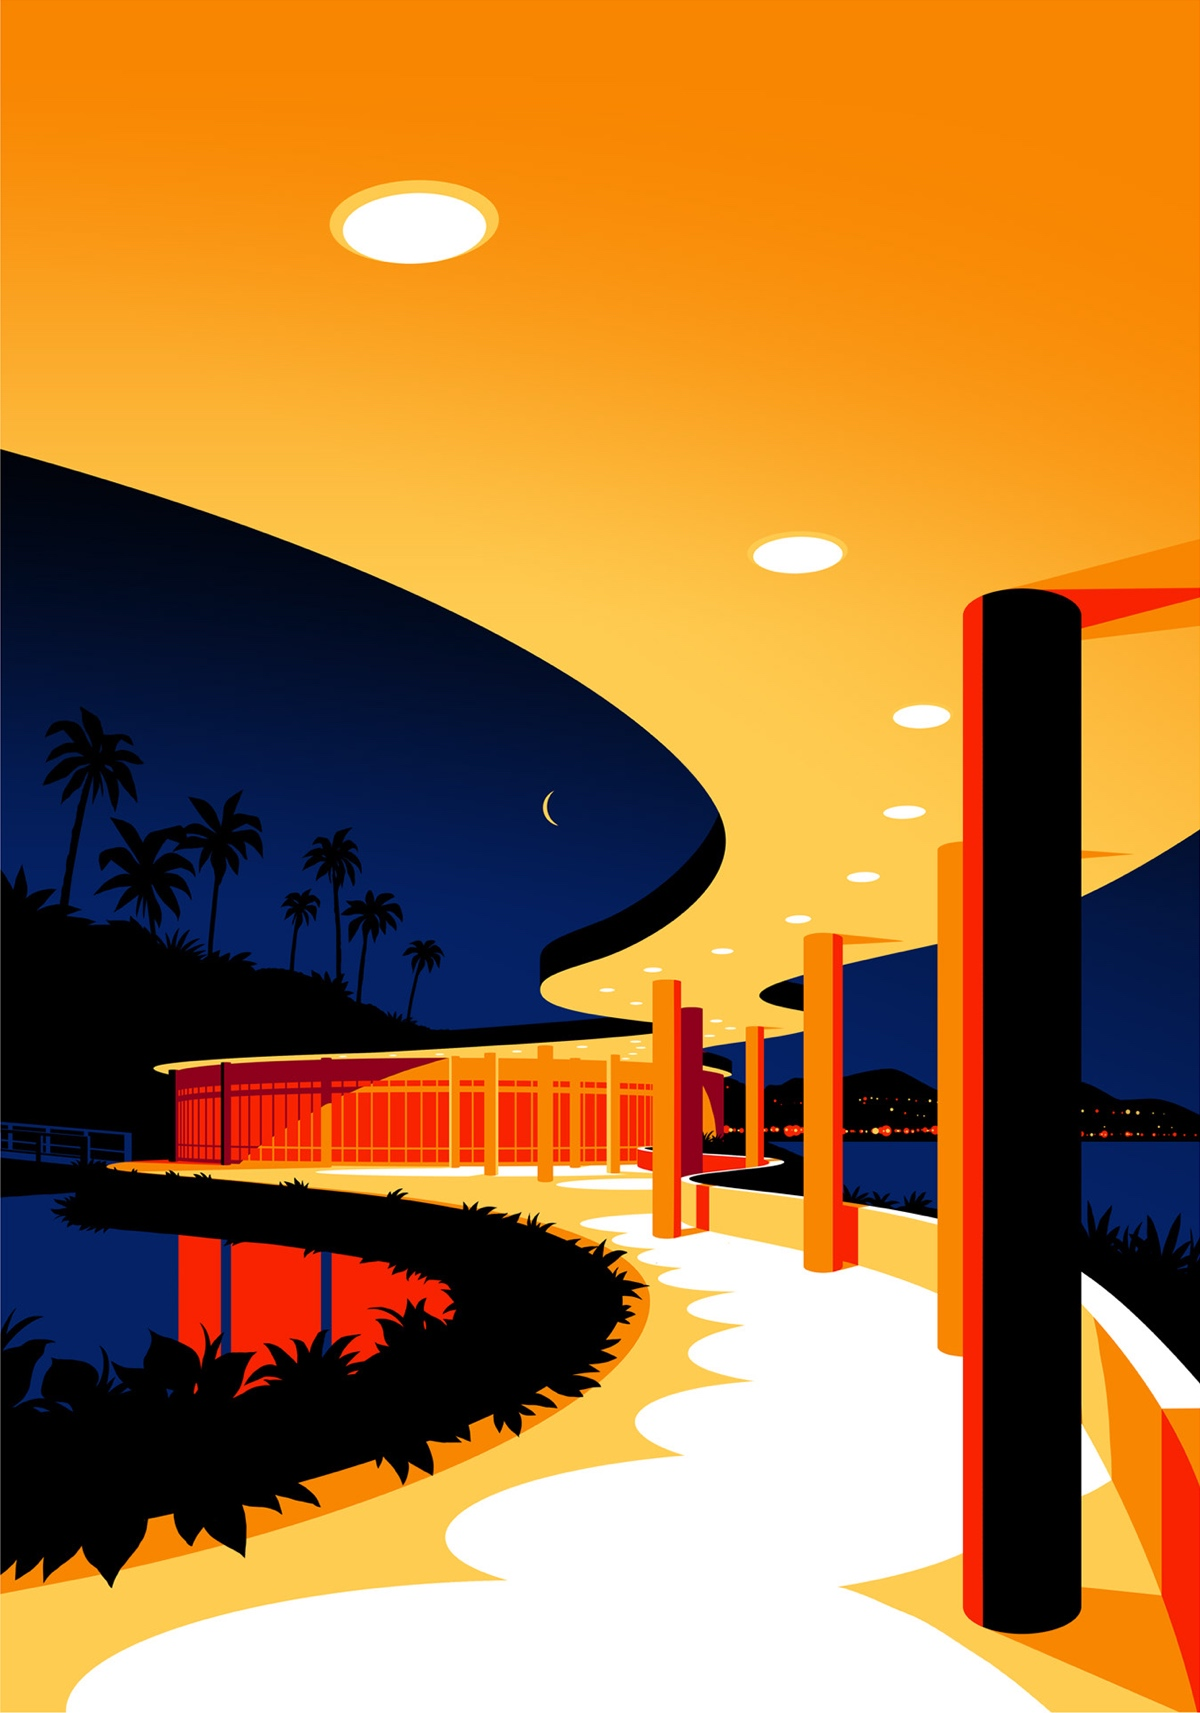 oscar-niemeyer-architecture-illustrations-levente-szabo-5